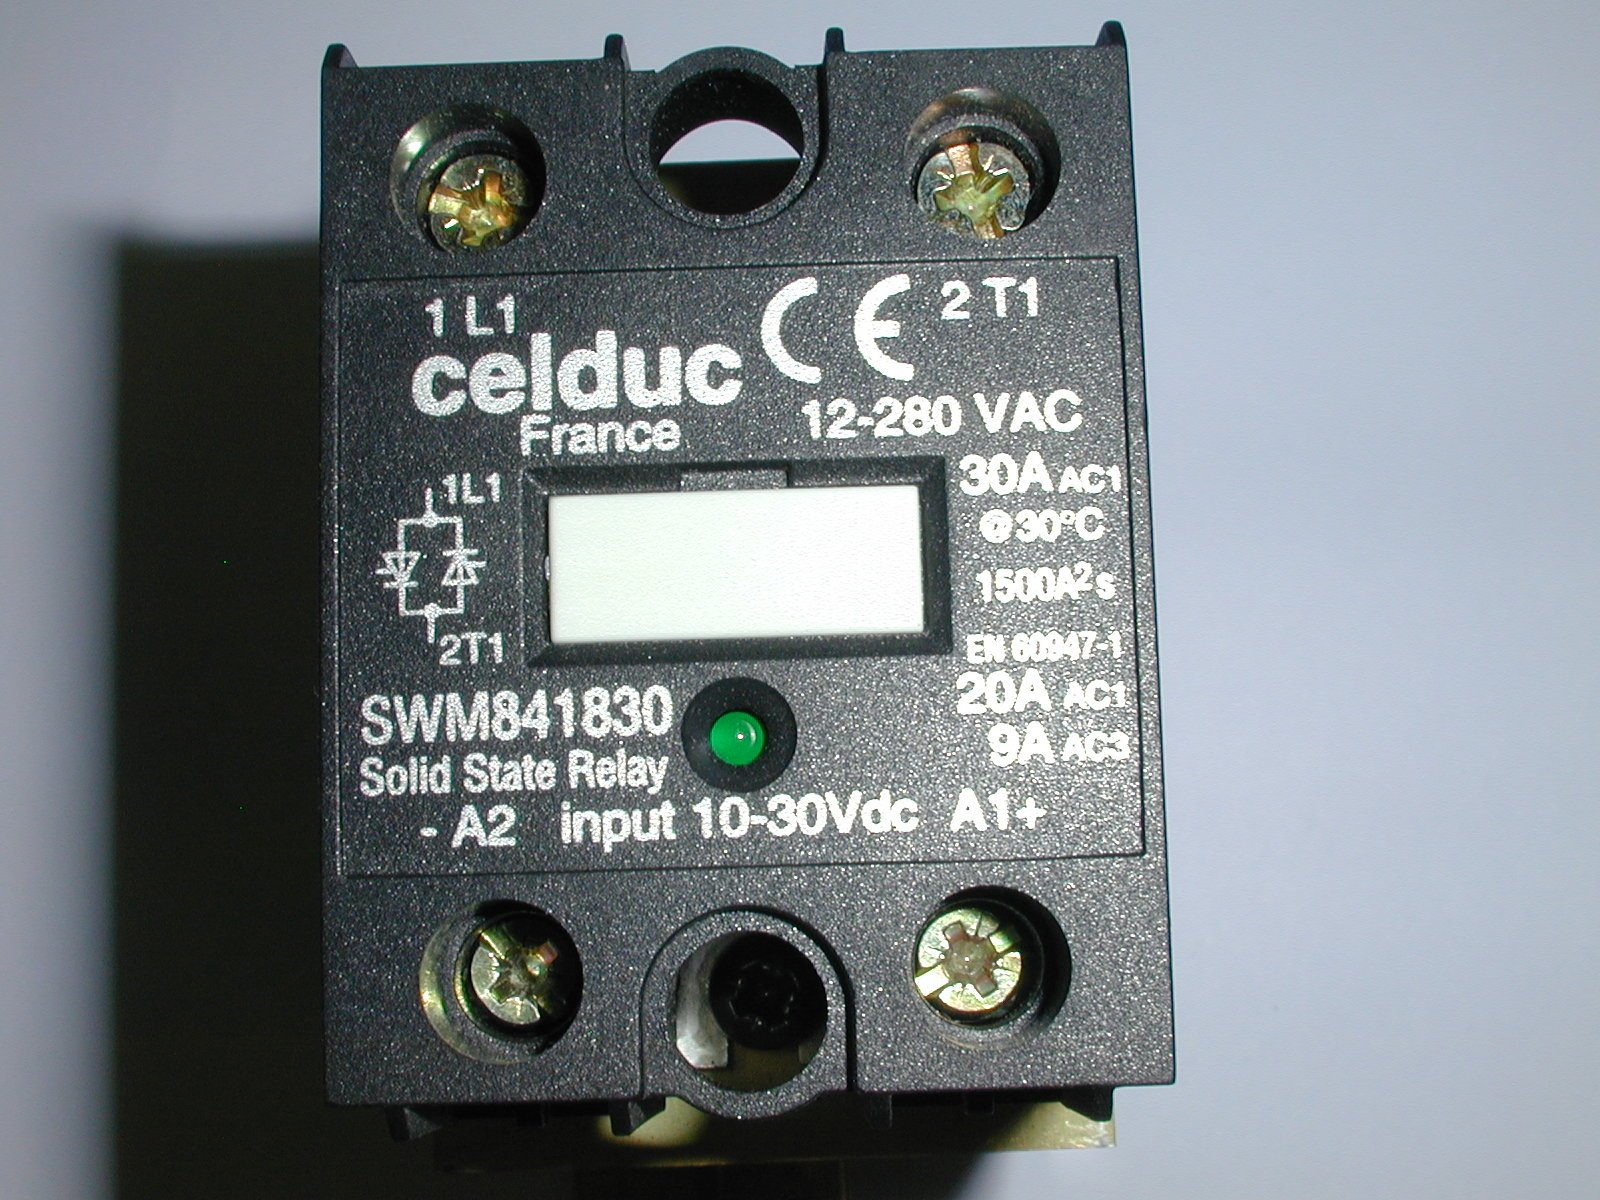 SWM841830 RELAY SINGLE PHASE WITH HEAT SINK (1 EACH) by CELDEC